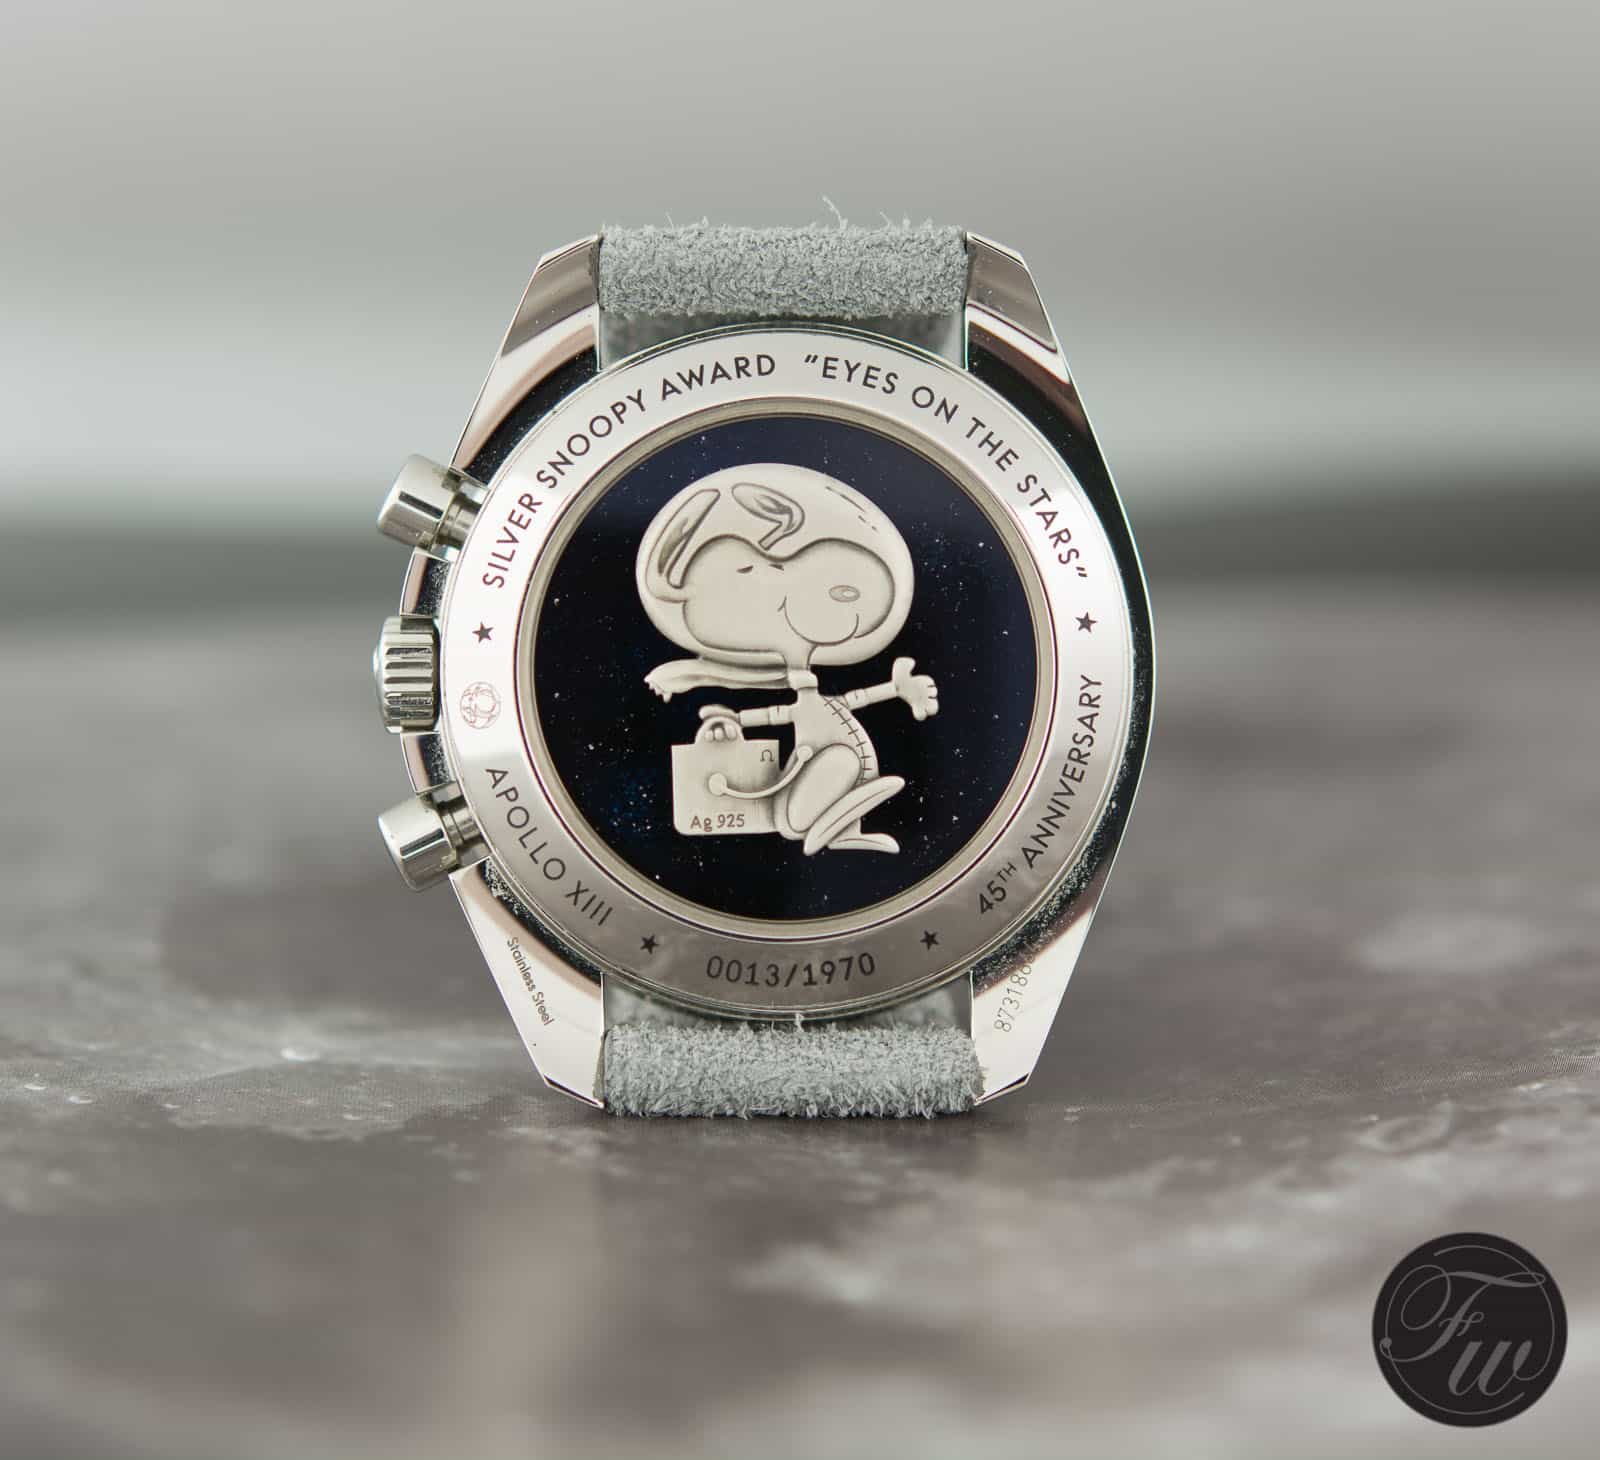 Snoopy on the Dial